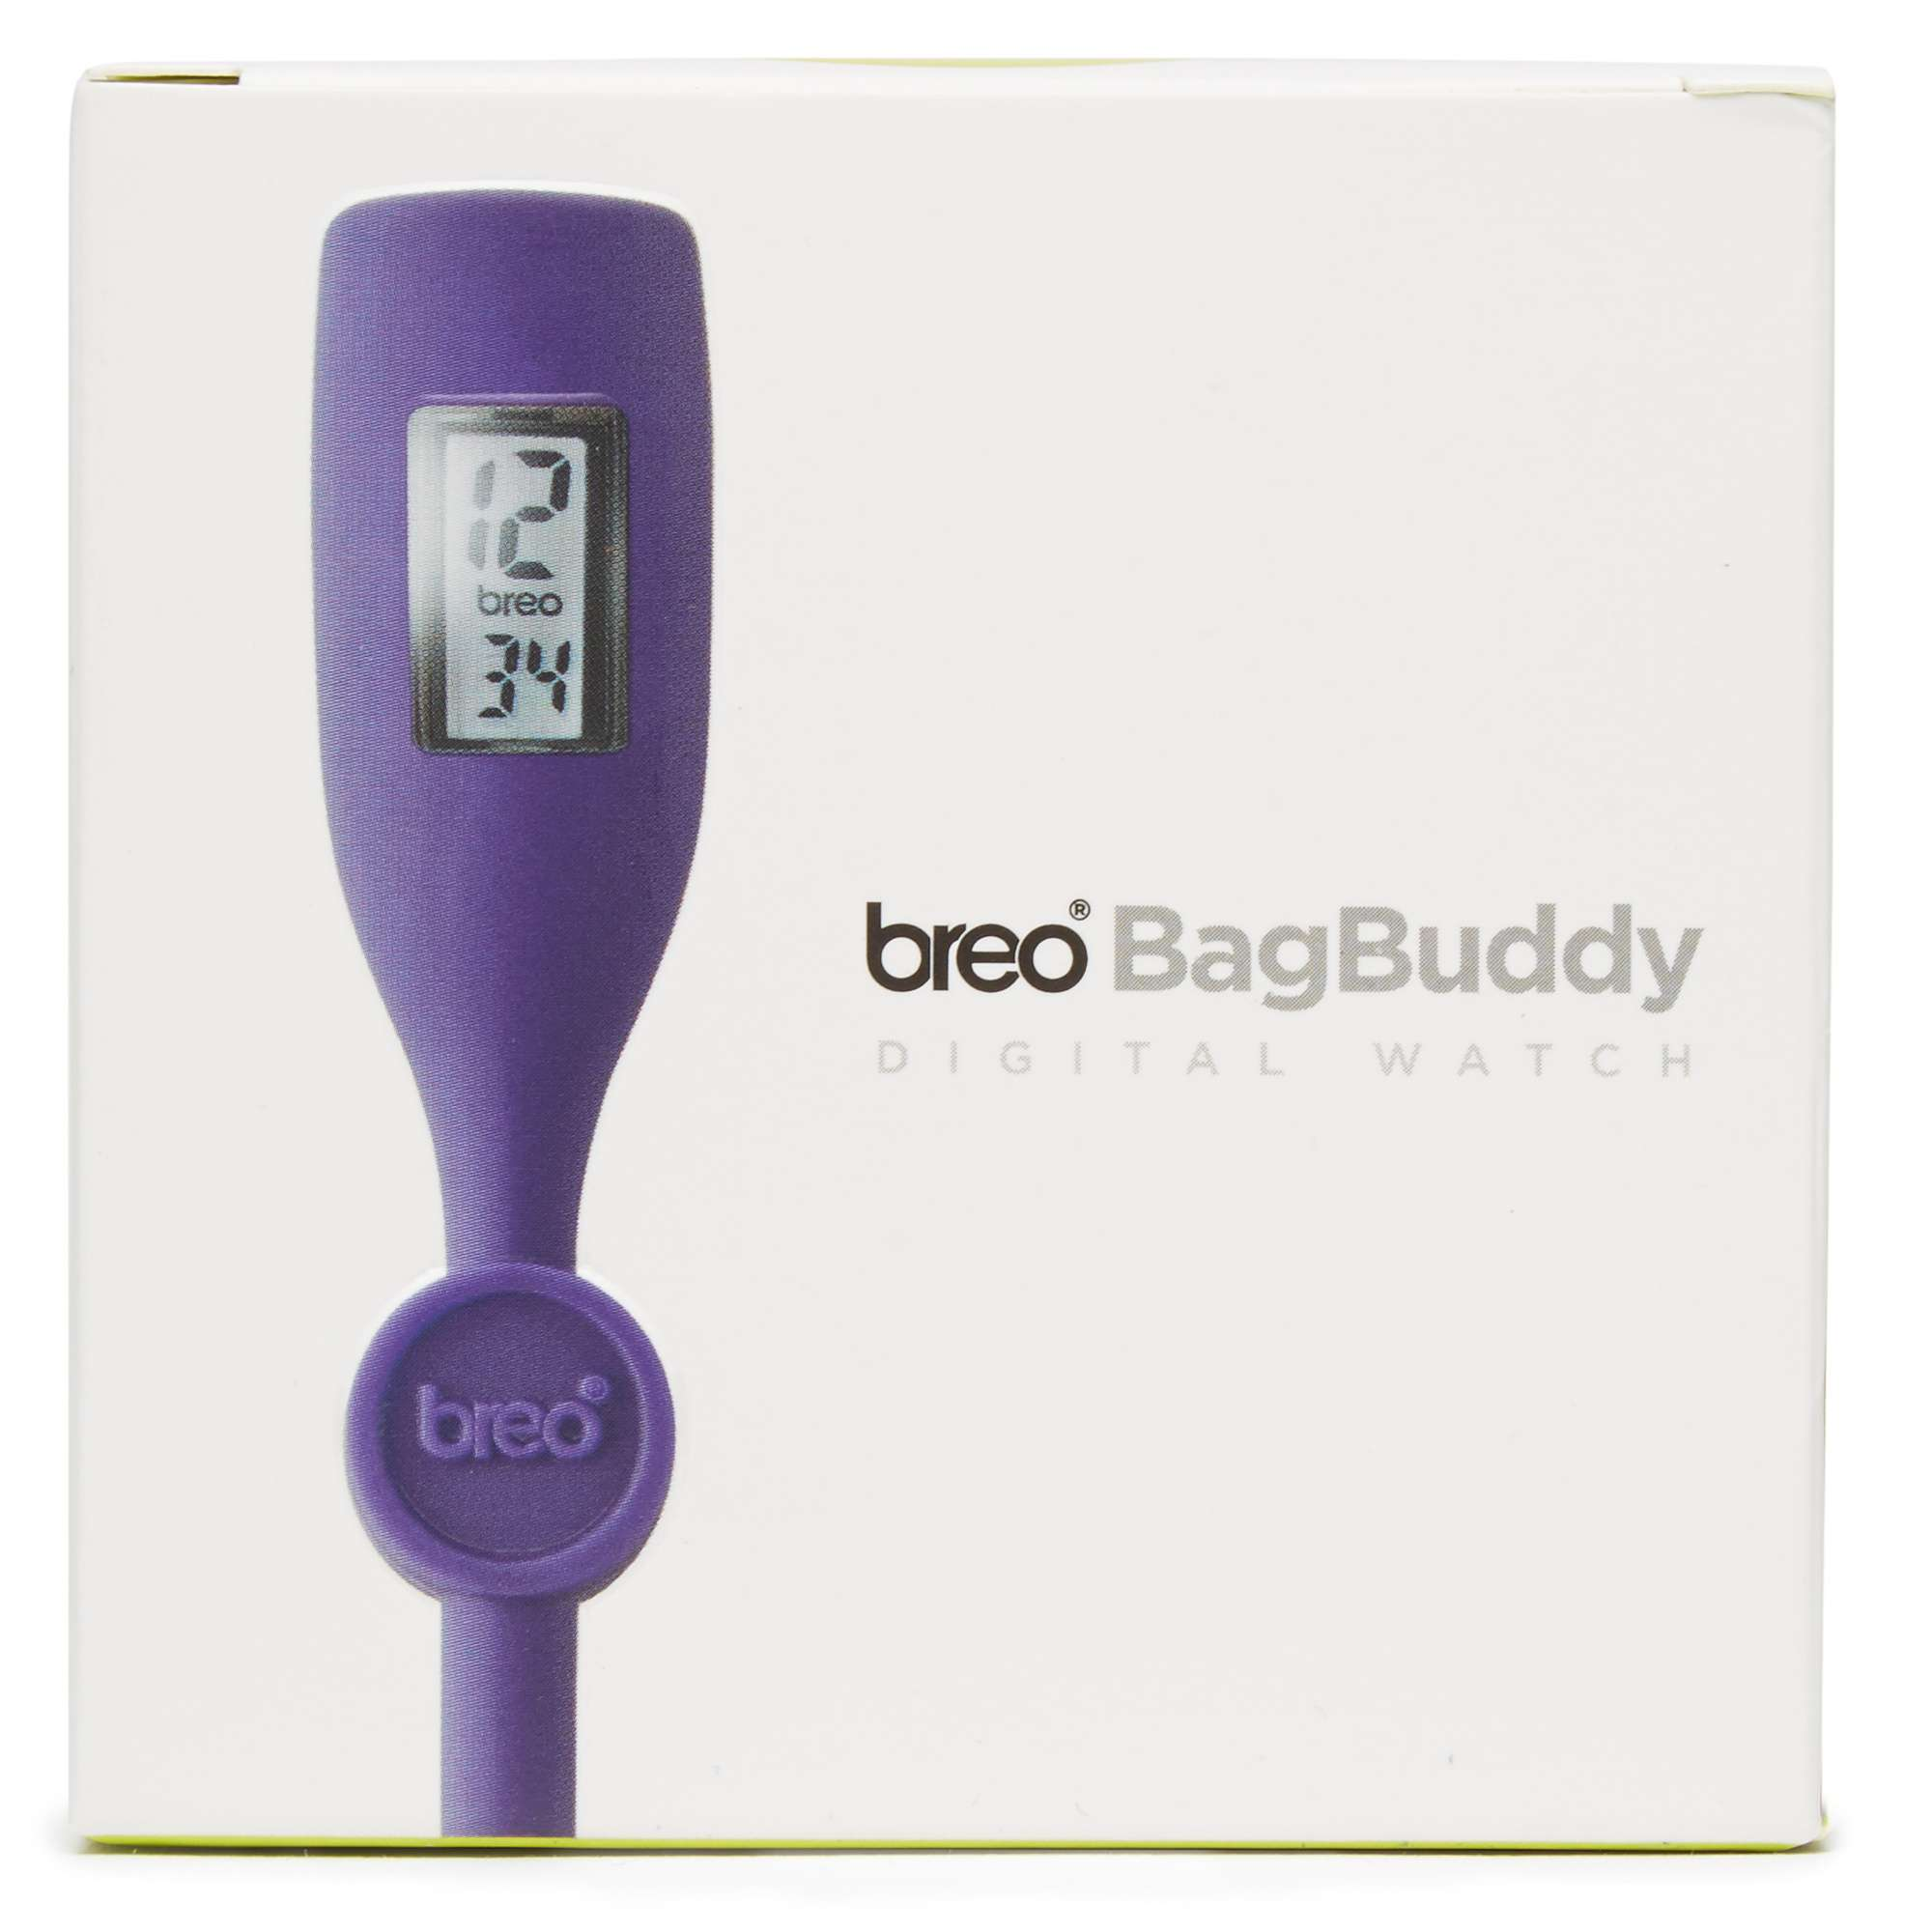 BREO Bag Buddy Watch